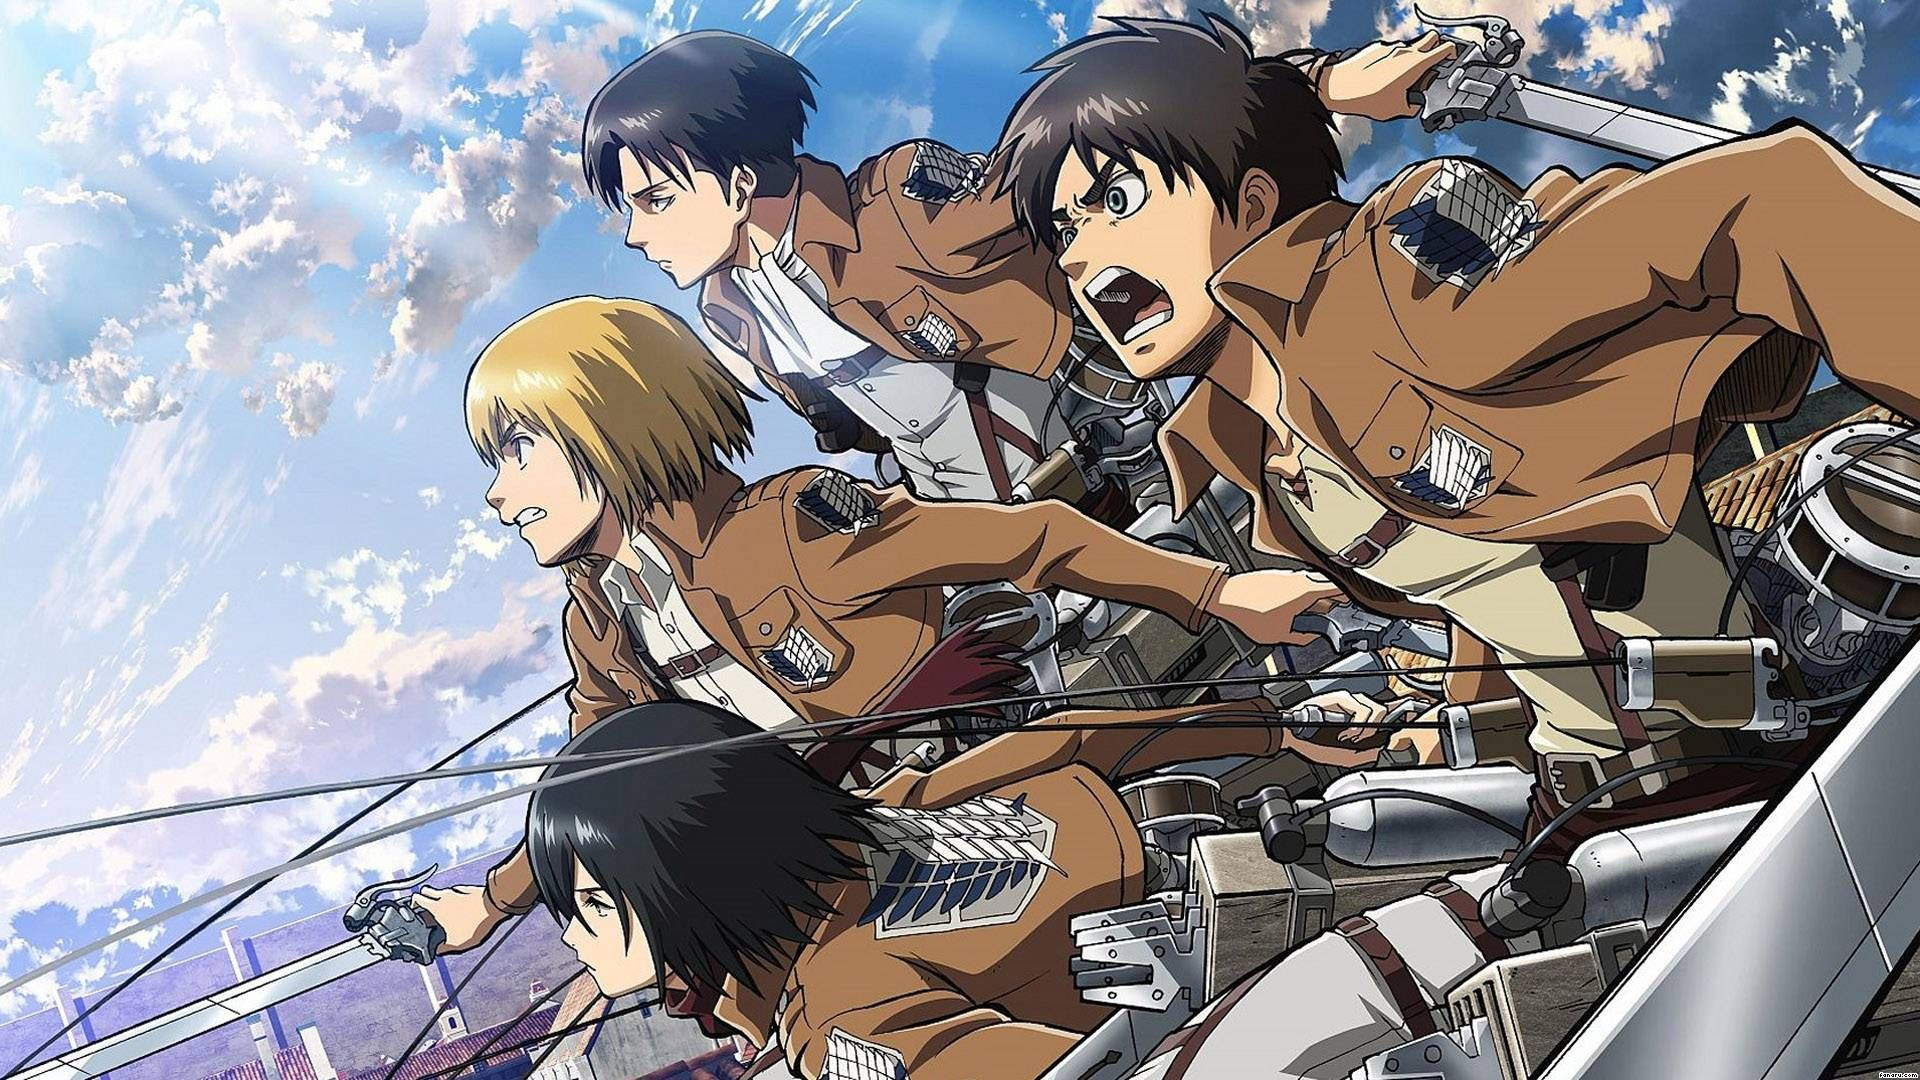 Attack on titan black and white wallpaper, attack on titan characters wallpaper,. Aot wallpaper ipad cute - 1929 ford model a coupe pictures ...